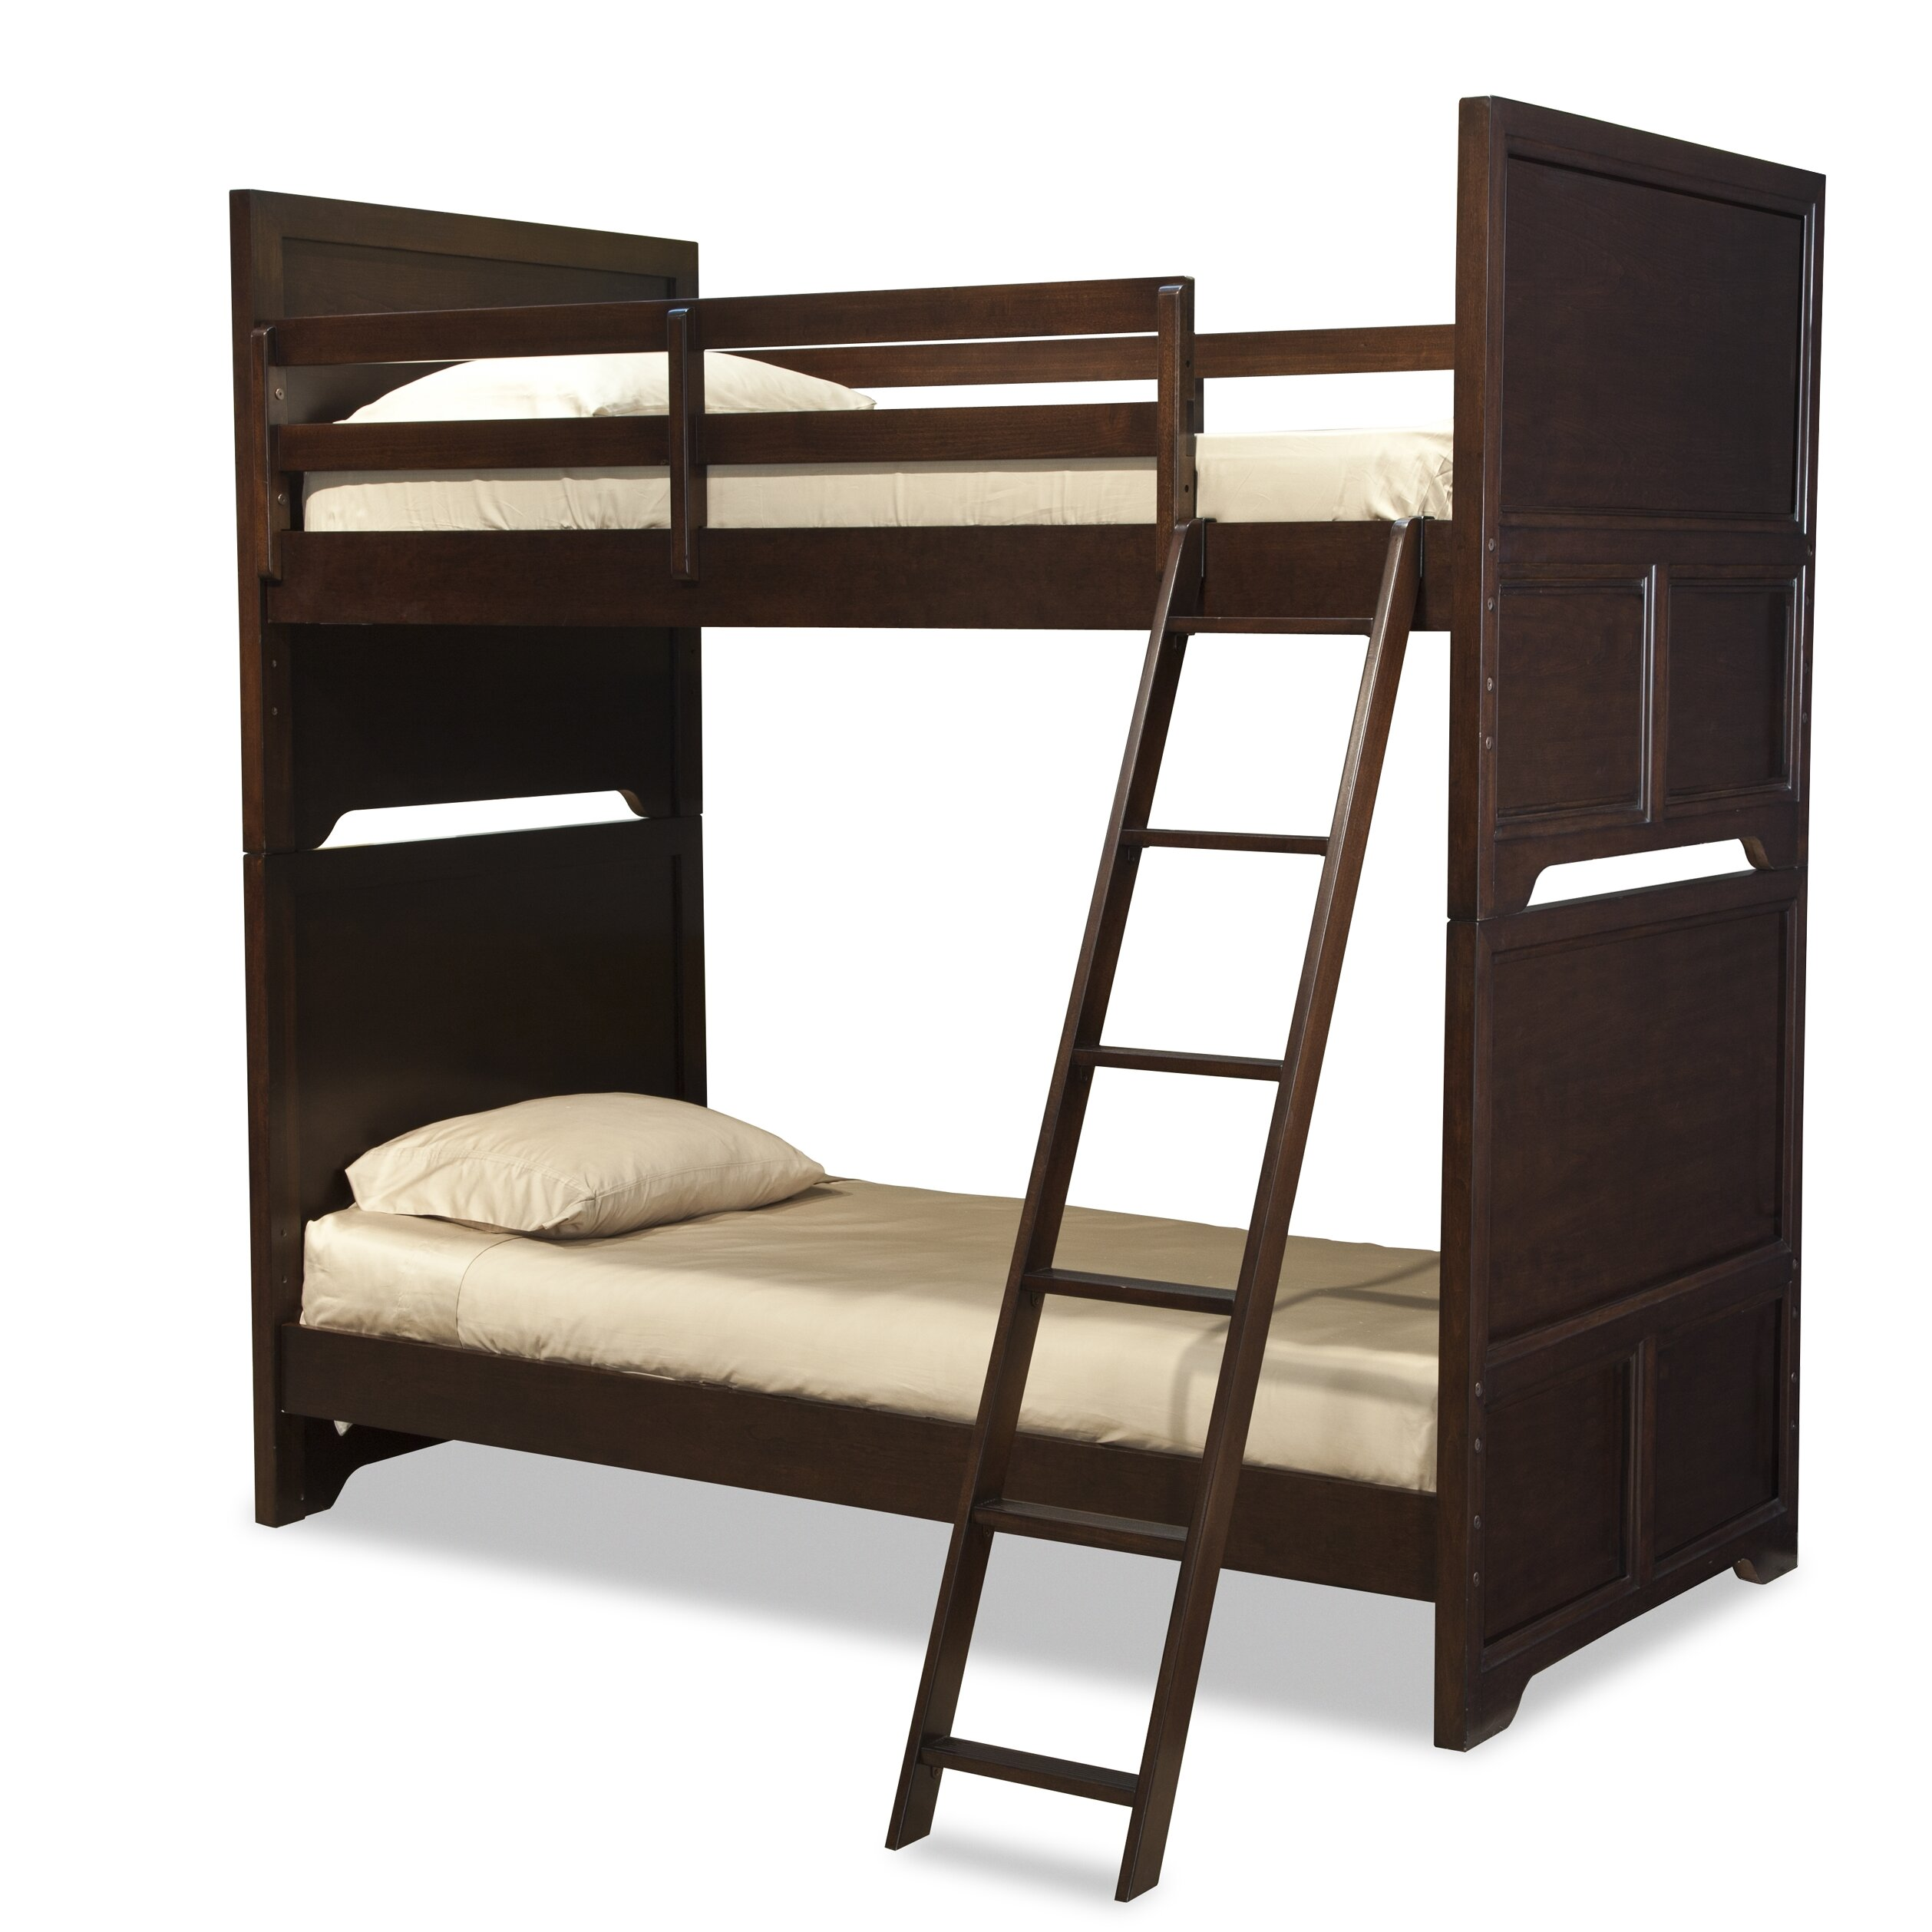 lc kids benchmark twin over twin standard bunk bed with underbed storage drawer wayfair. Black Bedroom Furniture Sets. Home Design Ideas